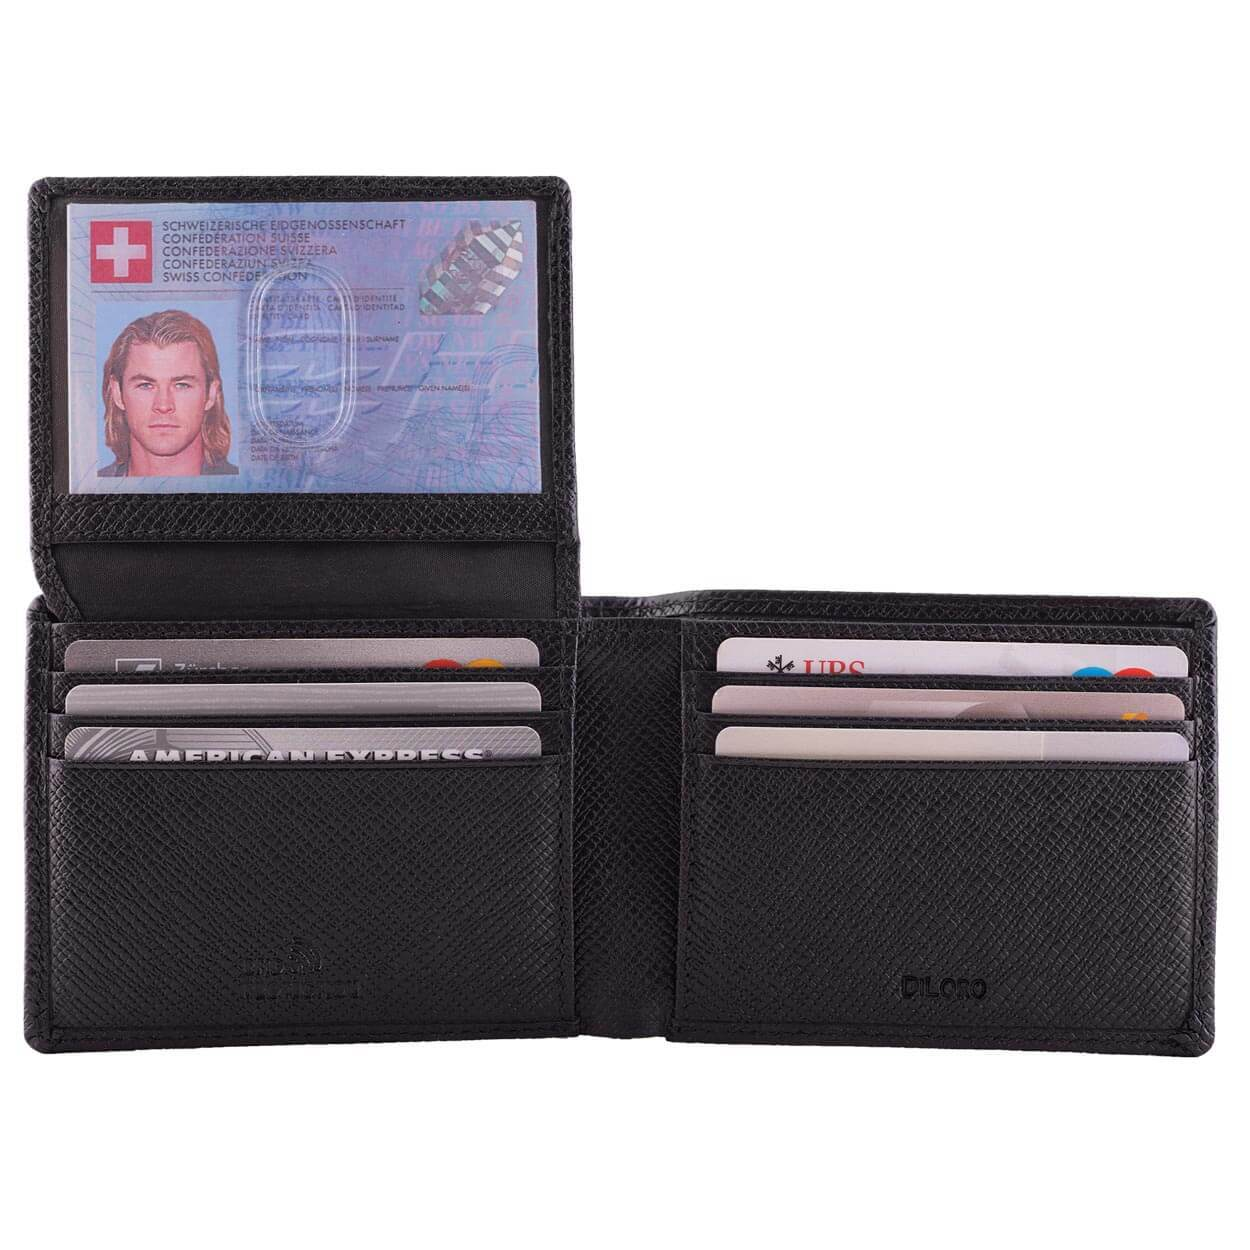 DiLoro Men's Slim Bifold Leather Wallet 2 ID Windows Black Saffiano - Open View with ID Window Open